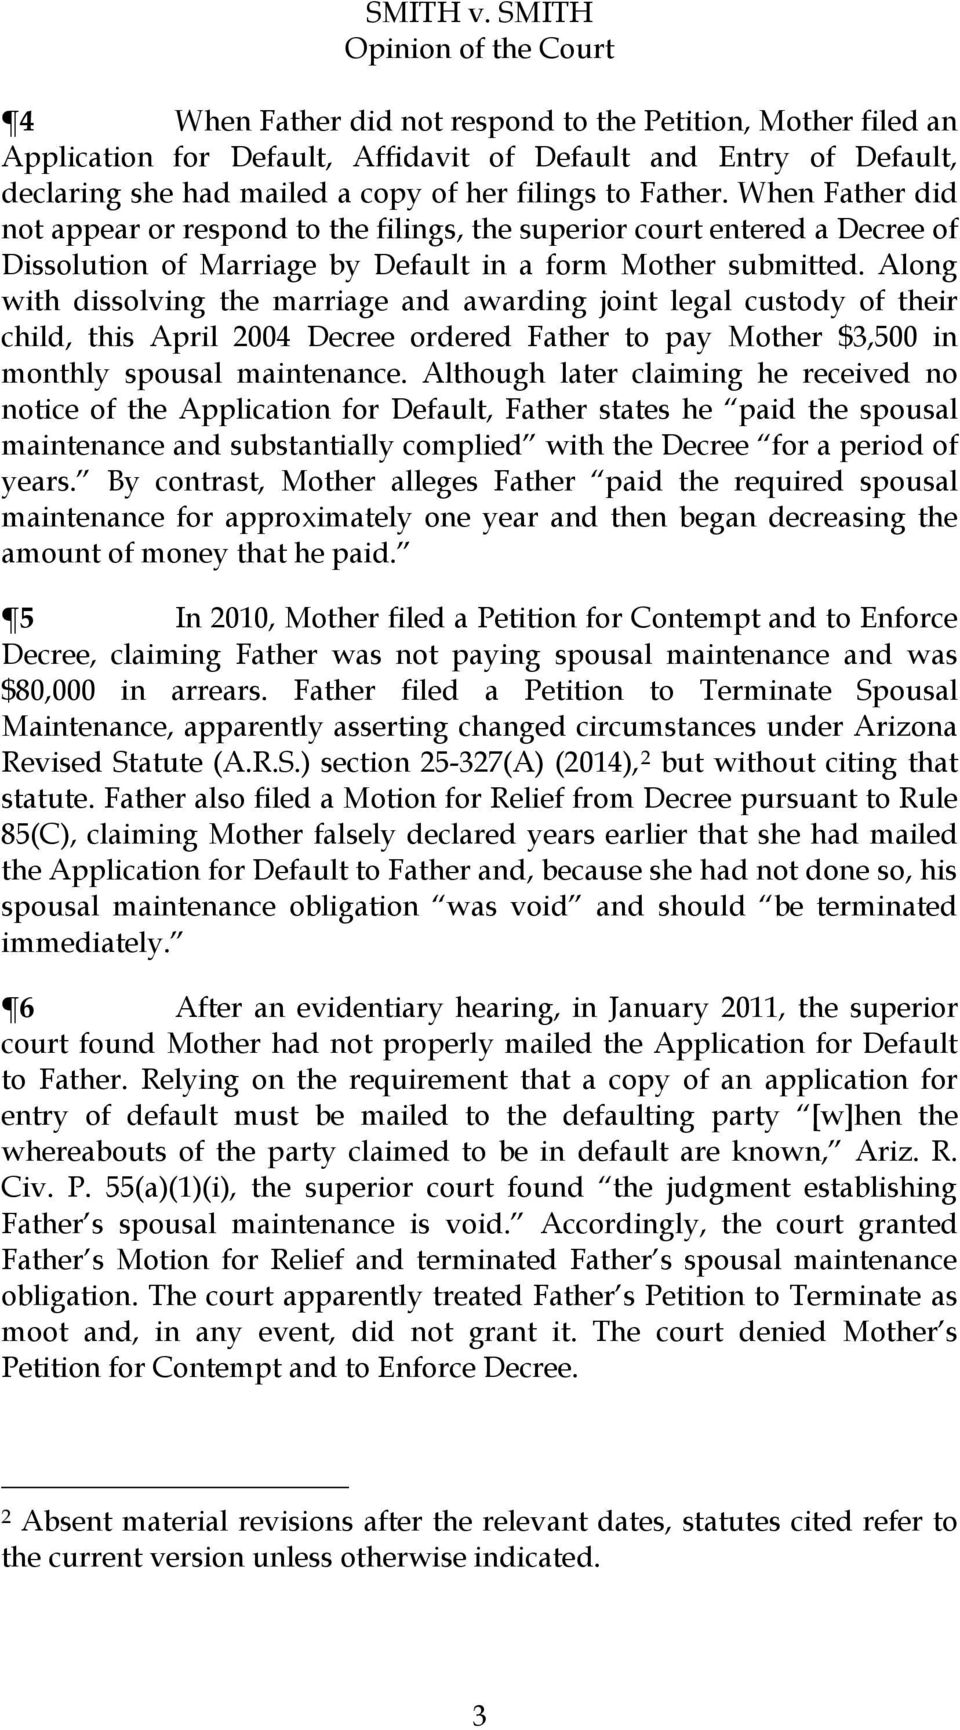 Along with dissolving the marriage and awarding joint legal custody of their child, this April 2004 Decree ordered Father to pay Mother $3,500 in monthly spousal maintenance.